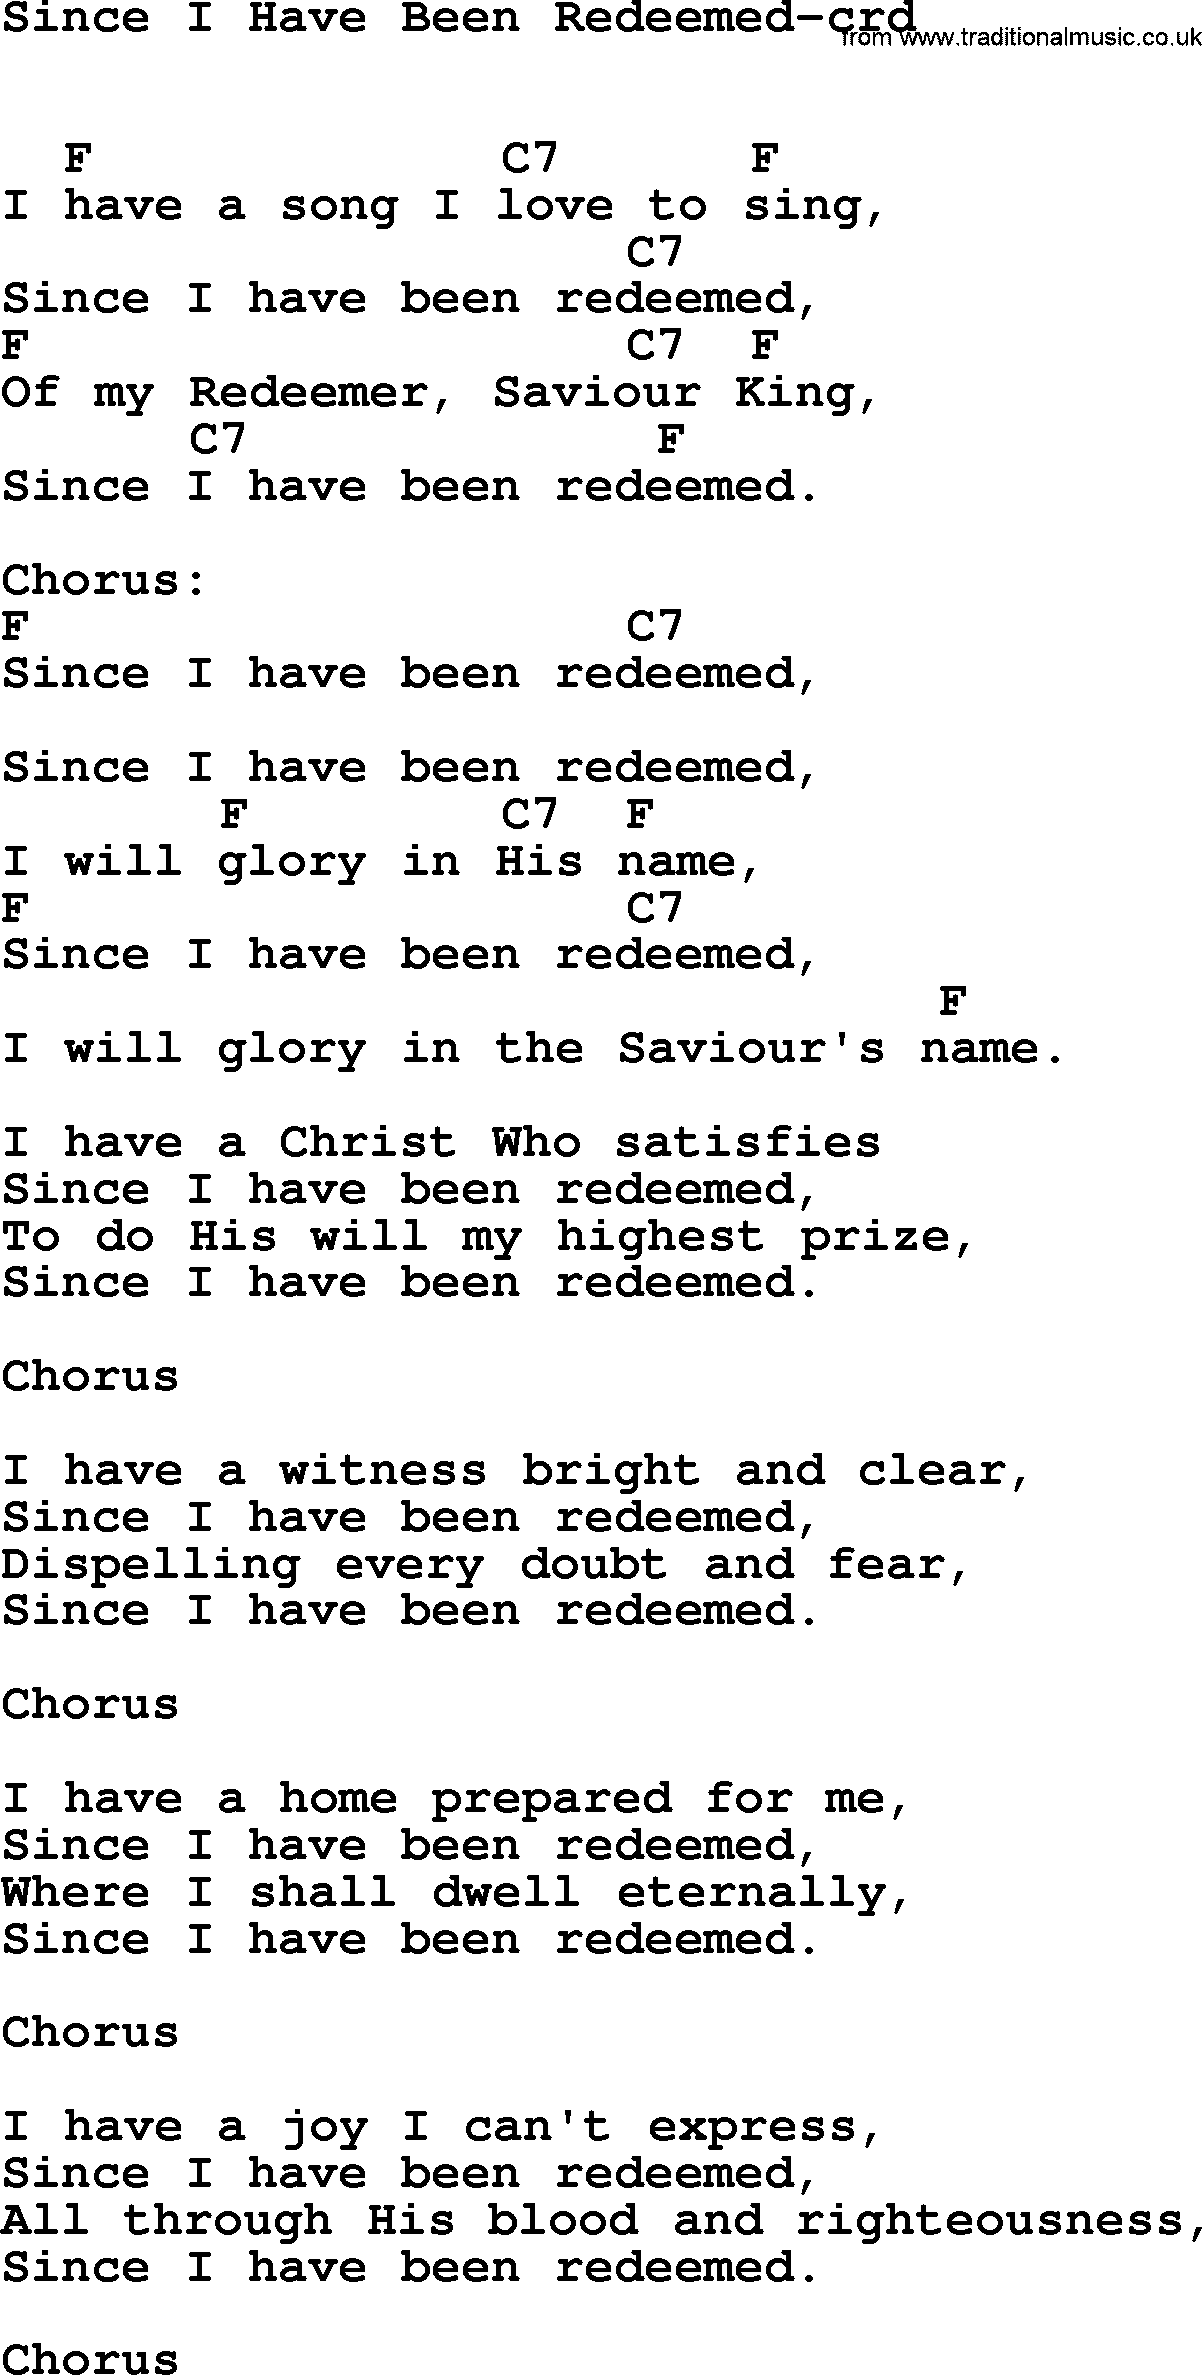 Redeemed lyrics for Bedroom hymns lyrics